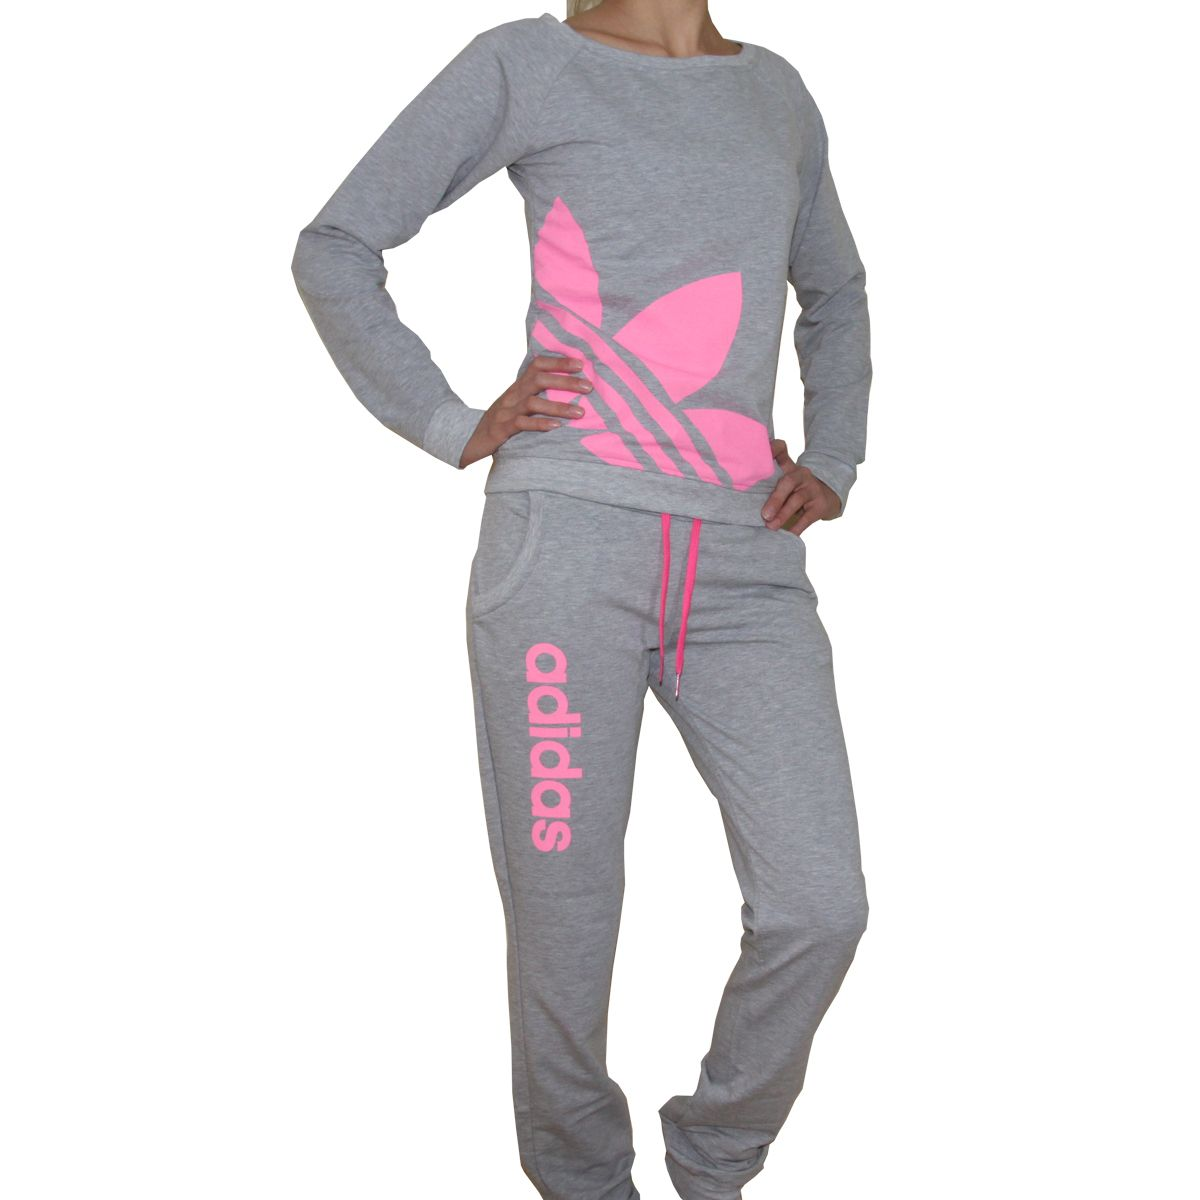 pink adidas tracksuit for women